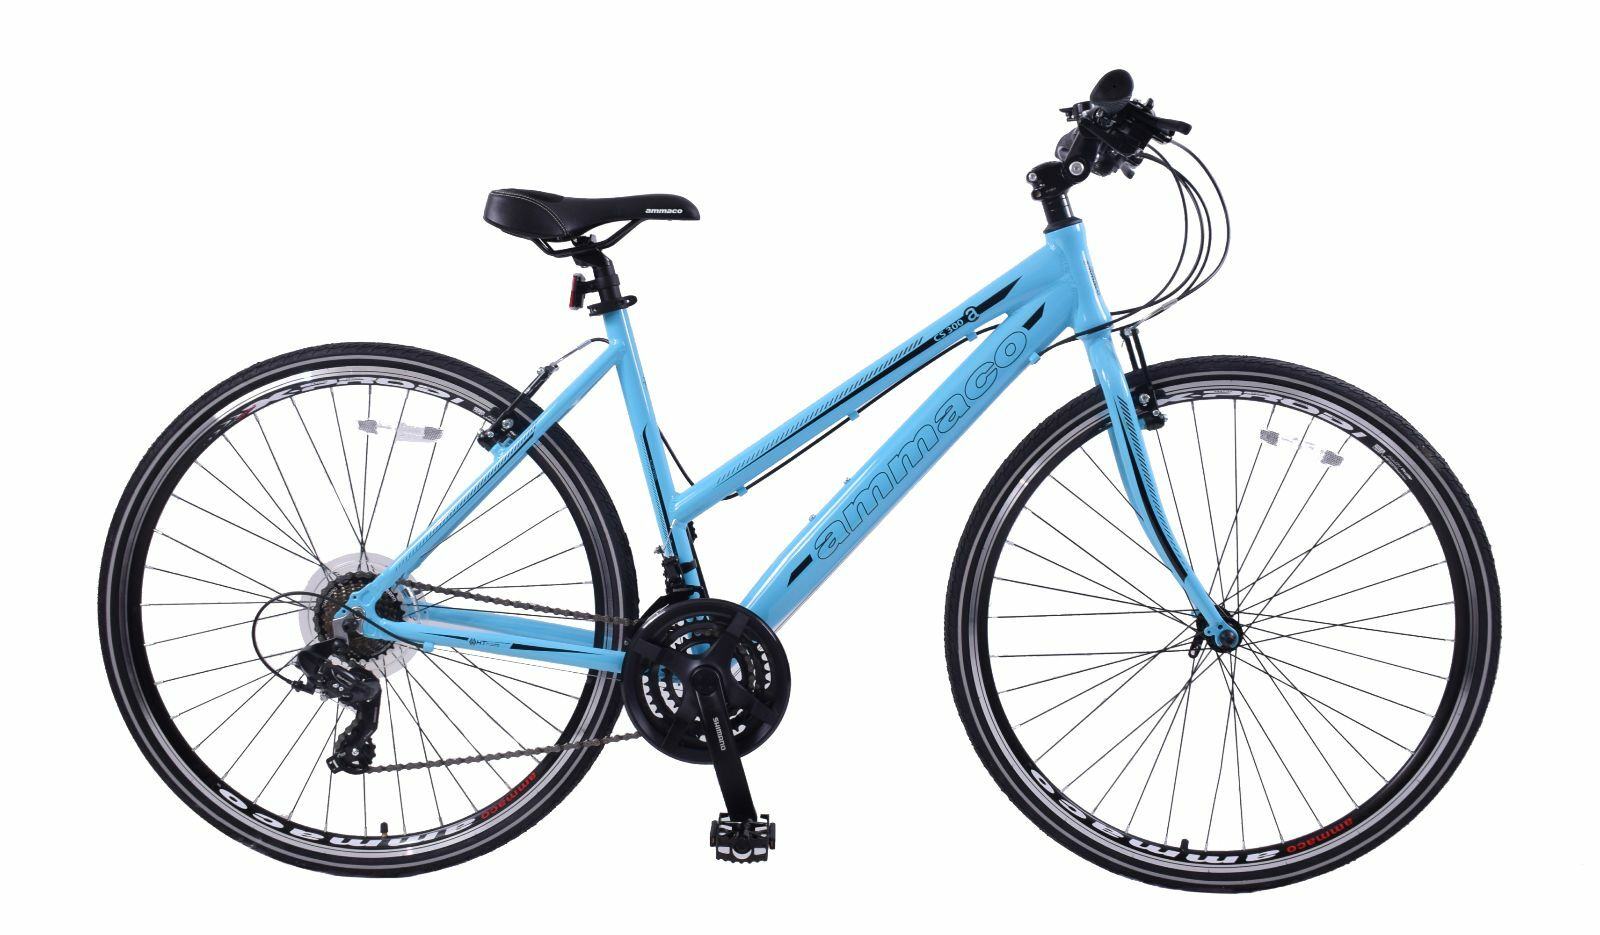 AMMACO CS300 WOMENS HYBRID SPORTS BIKE 700C WHEEL 21 SPEED ALLOY 16  FRAME blueE